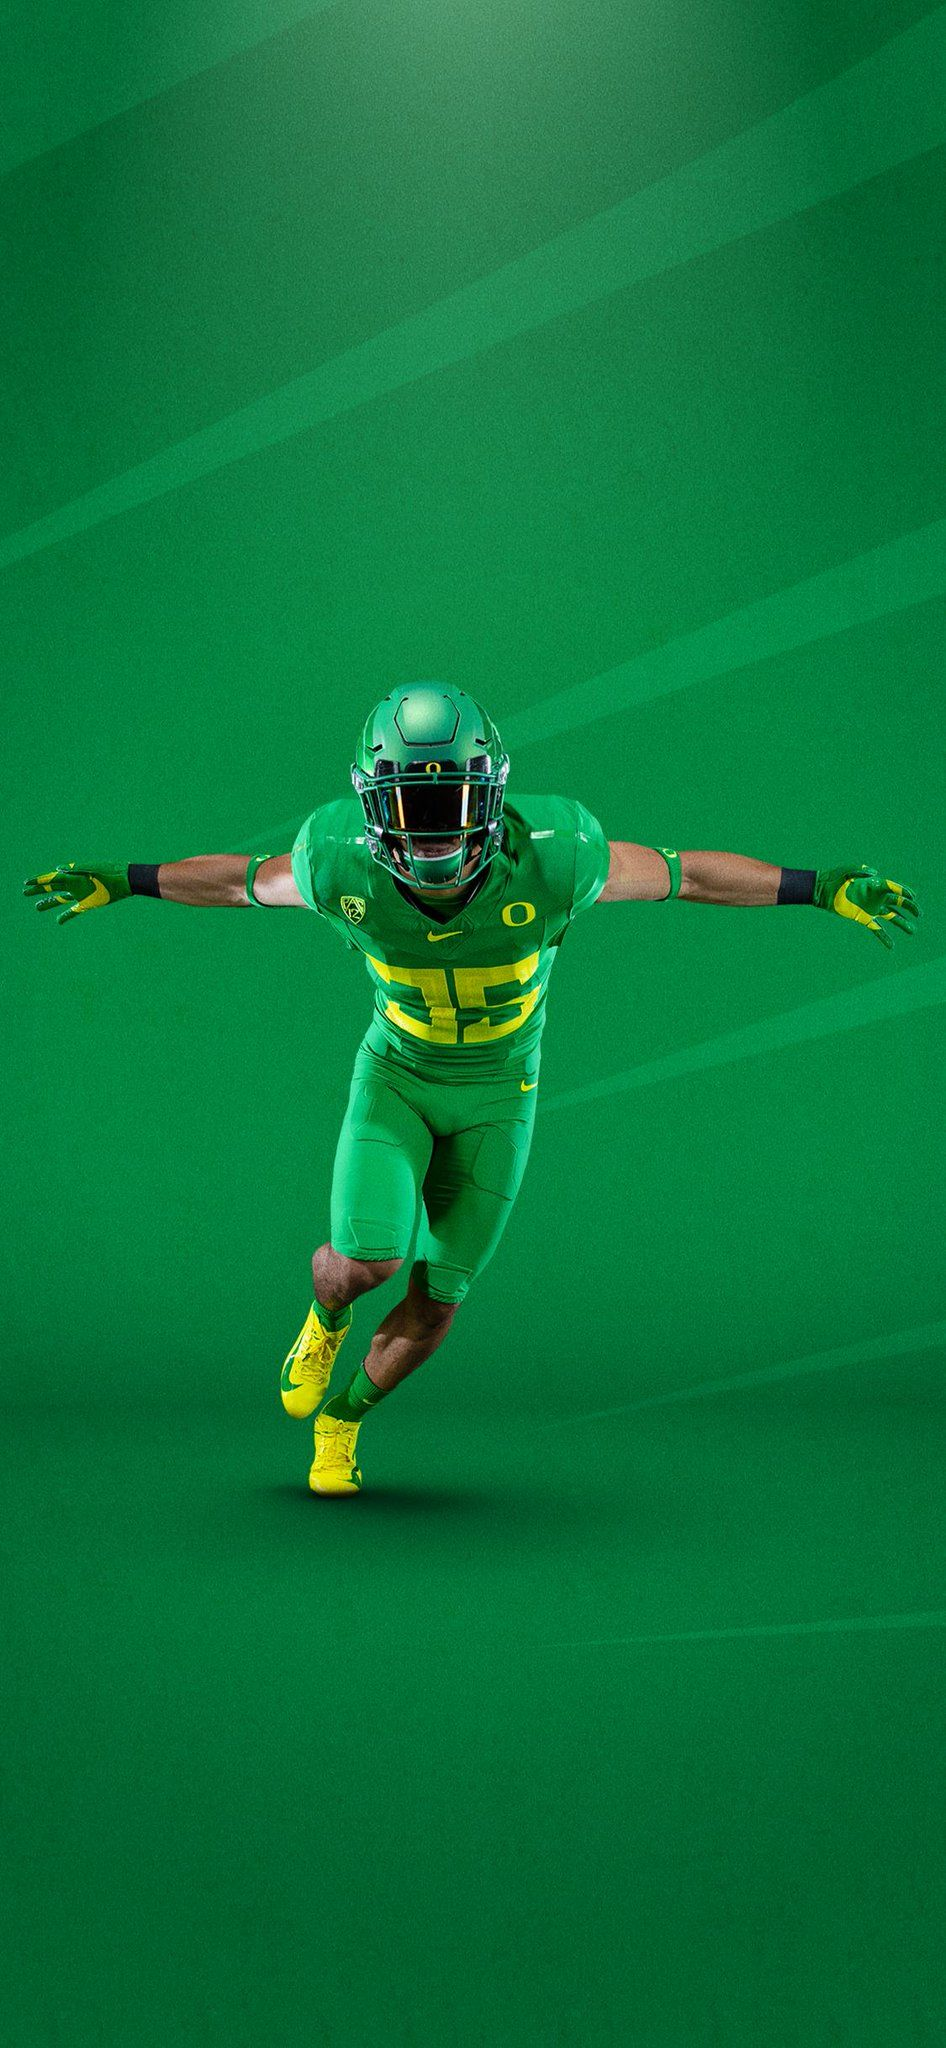 Oregon Football Wallpaper : oregon, football, wallpaper, University, Oregon, Ducks, Football, Uniforms, Green, Football,, Wallpaper